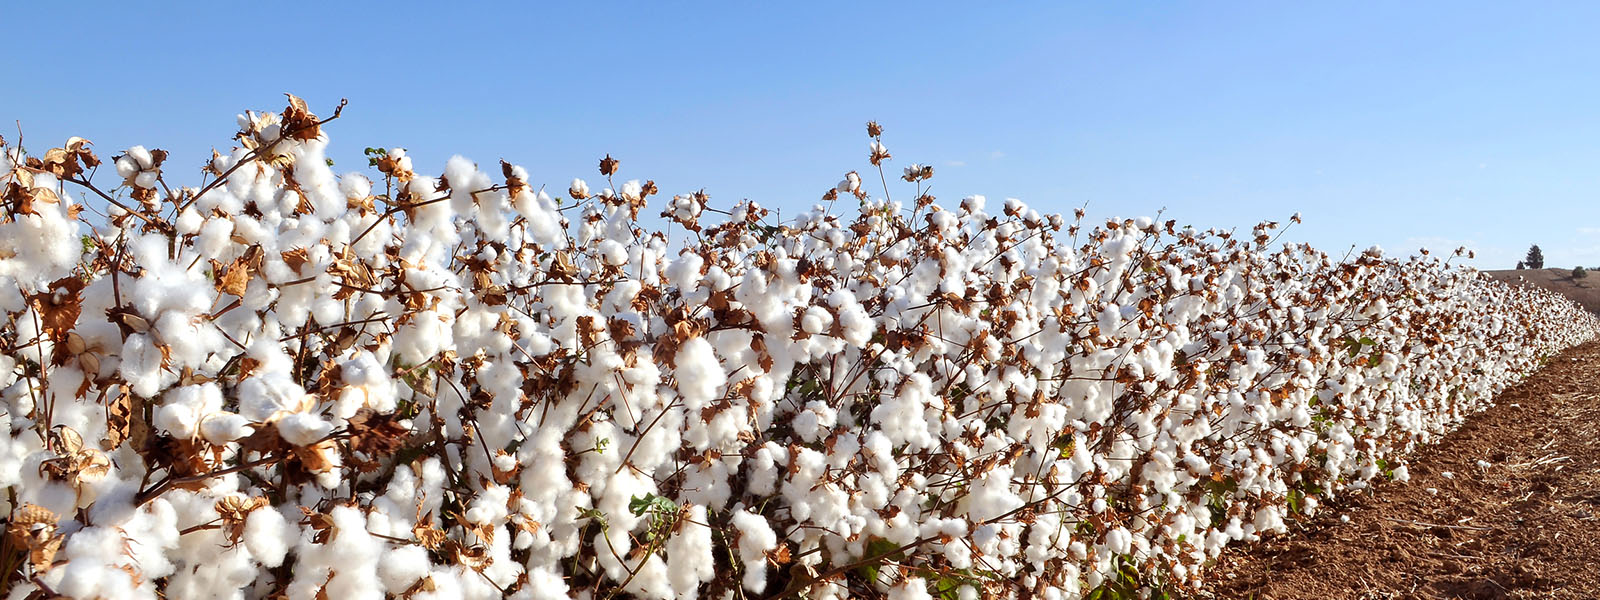 Cotton-Field-620997696_4474x2590.jpg